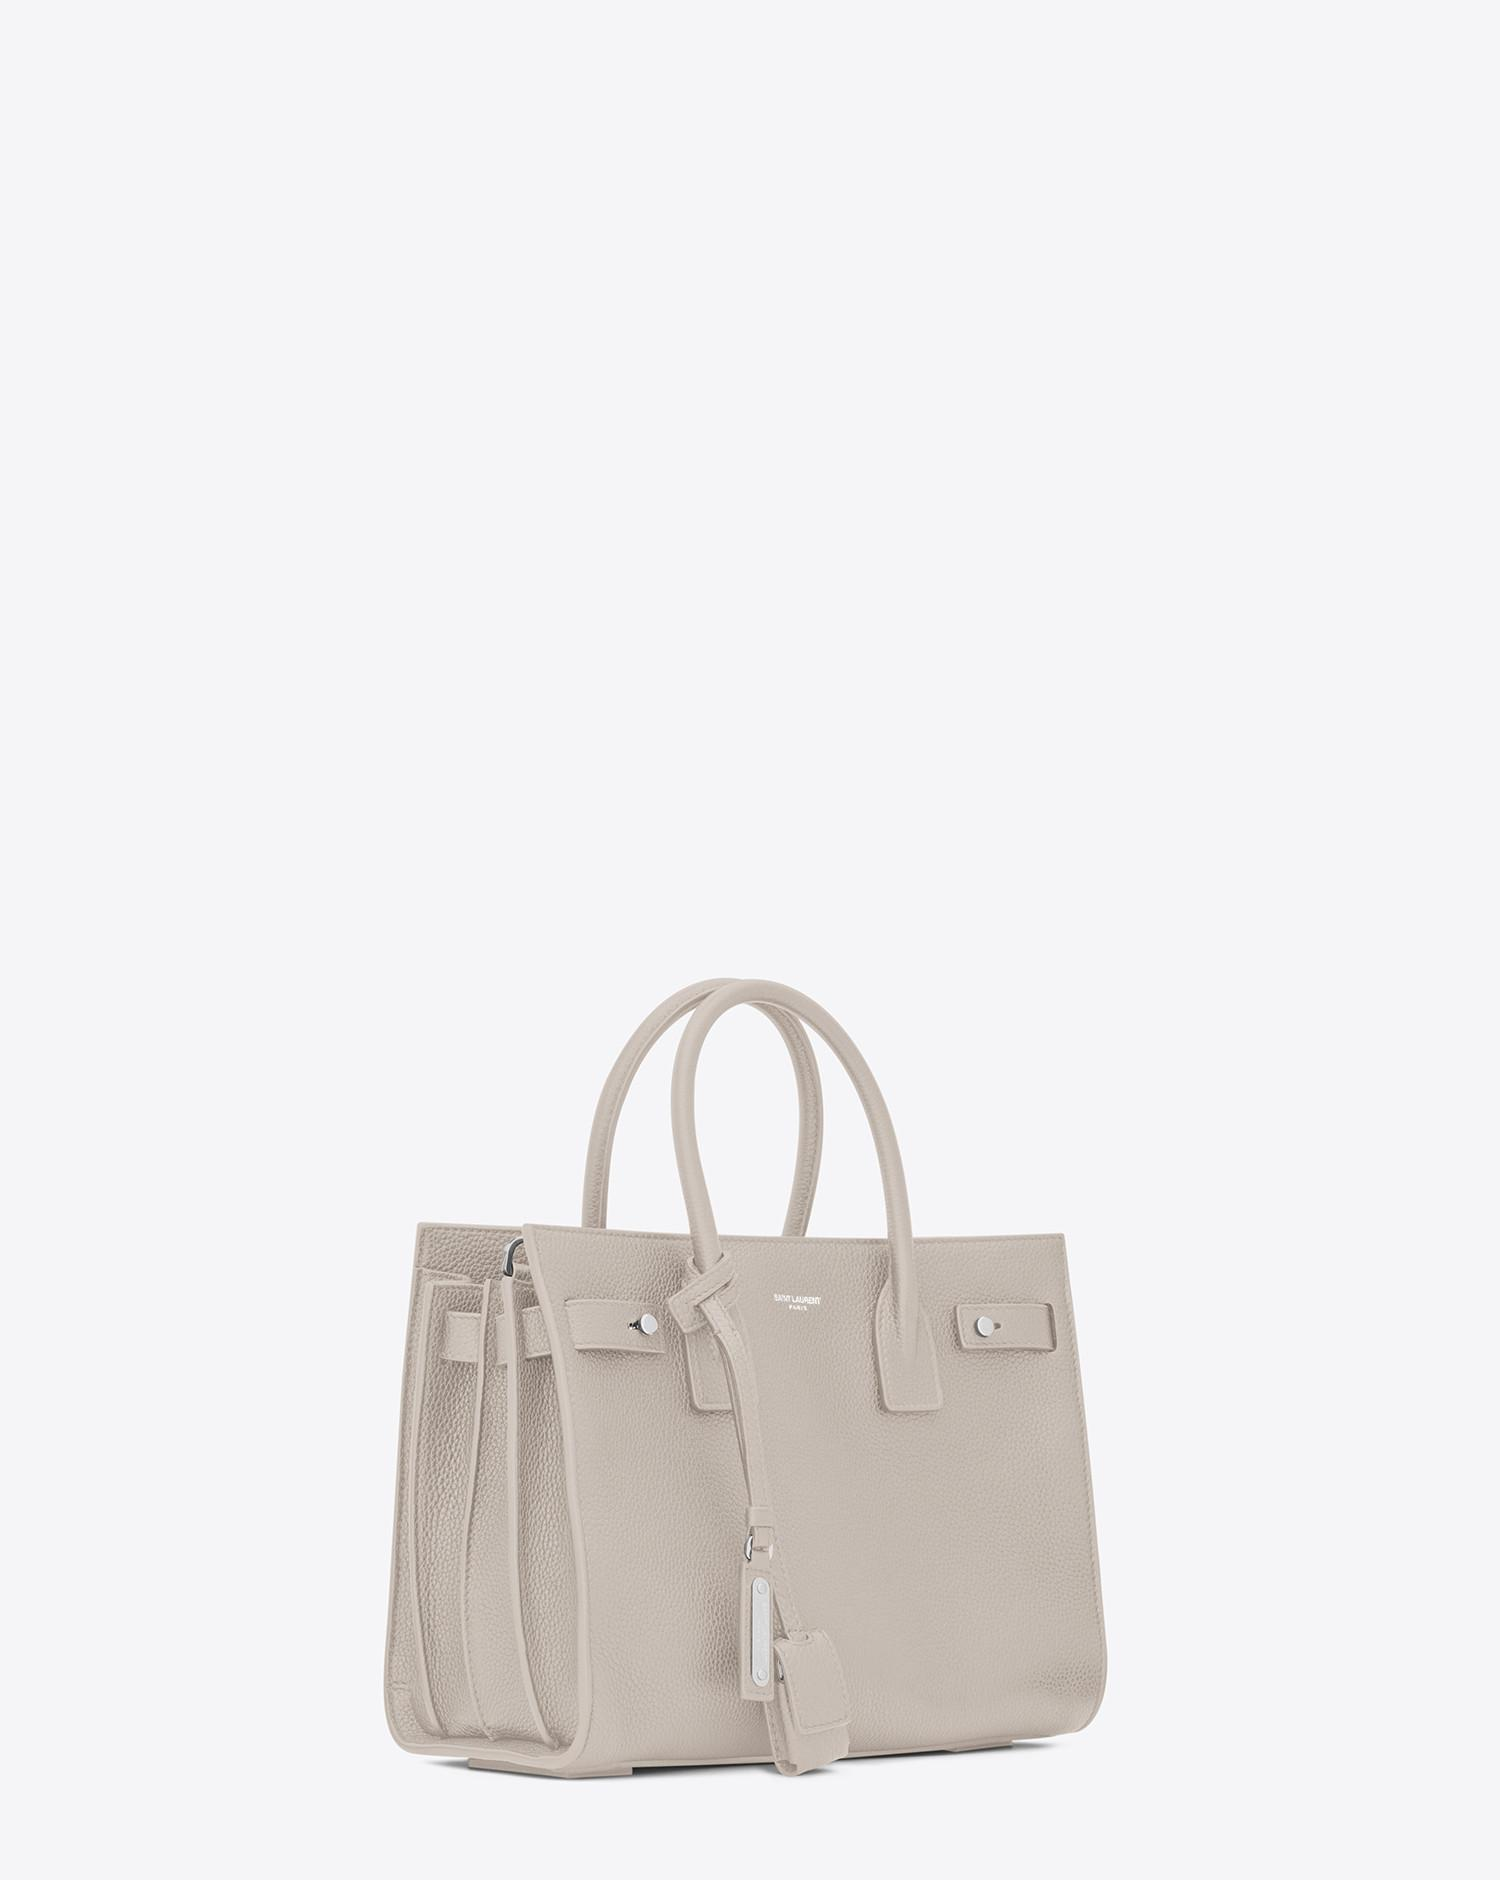 63208636ad Women's White Baby Sac De Jour Souple In Ivory Grained Leather